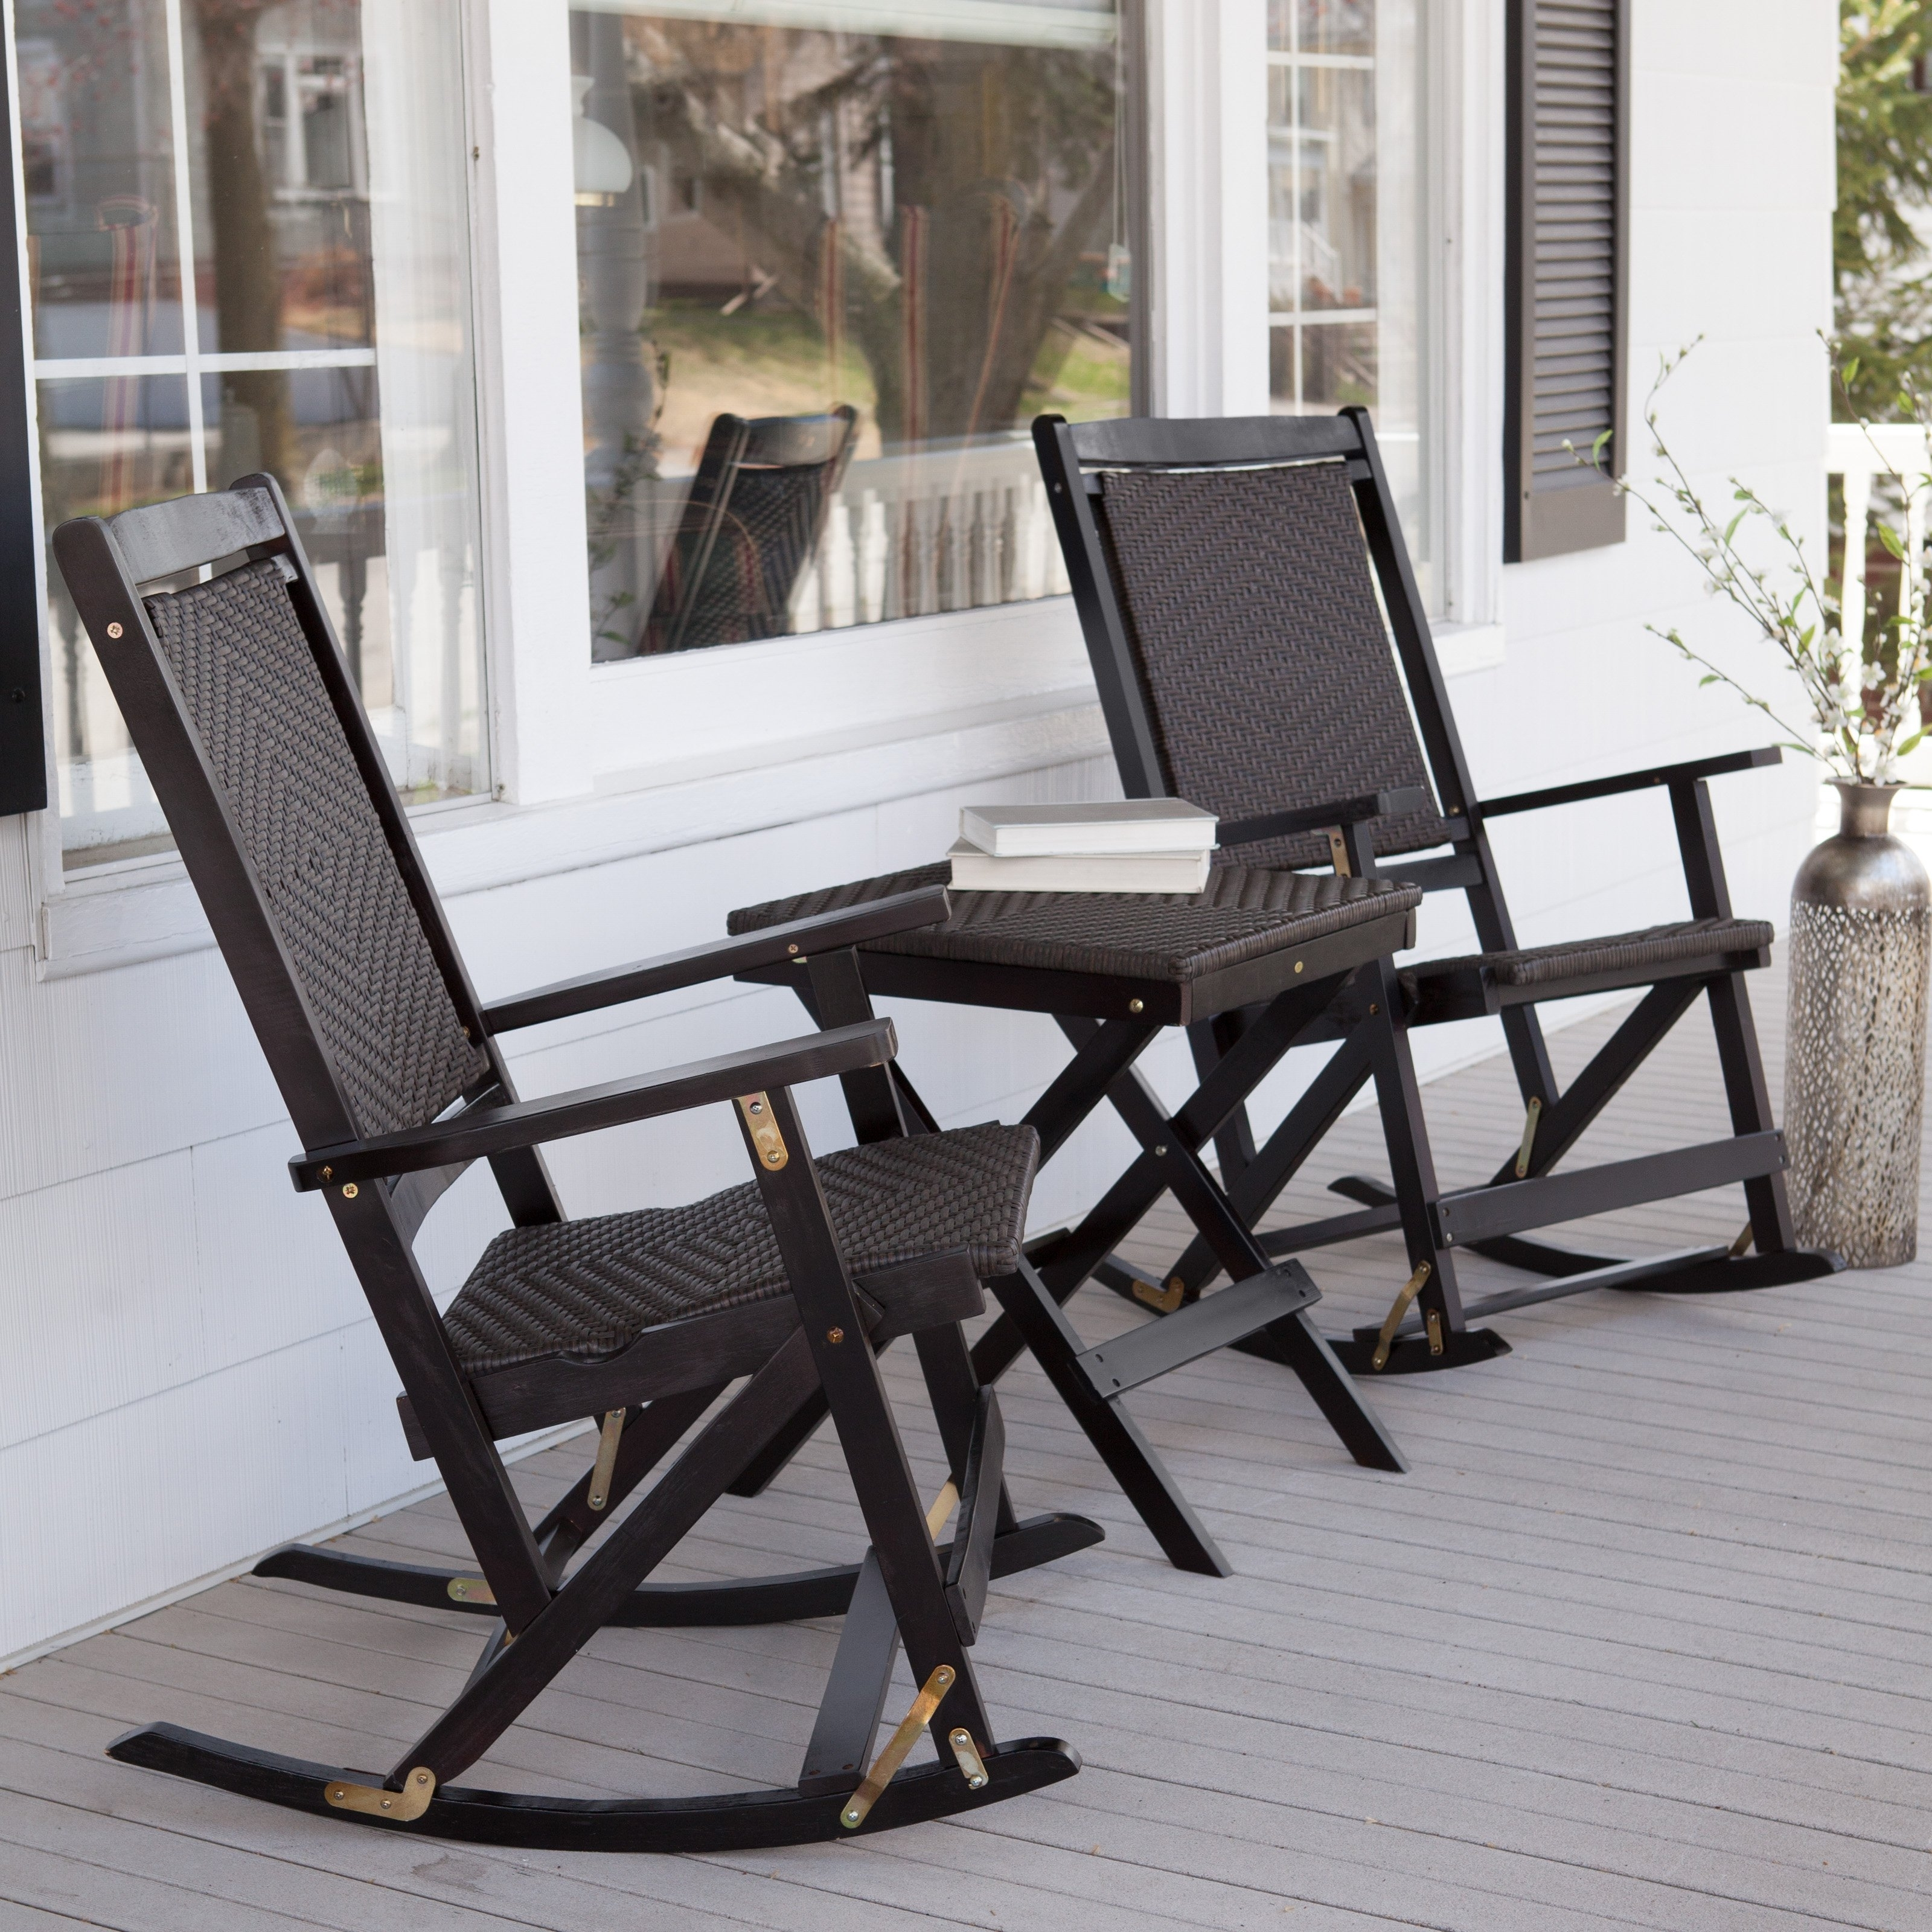 Well Known Outdoor Wicker Rocking Chair Set – Outdoor Designs Throughout Outdoor Rocking Chairs With Table (View 4 of 20)